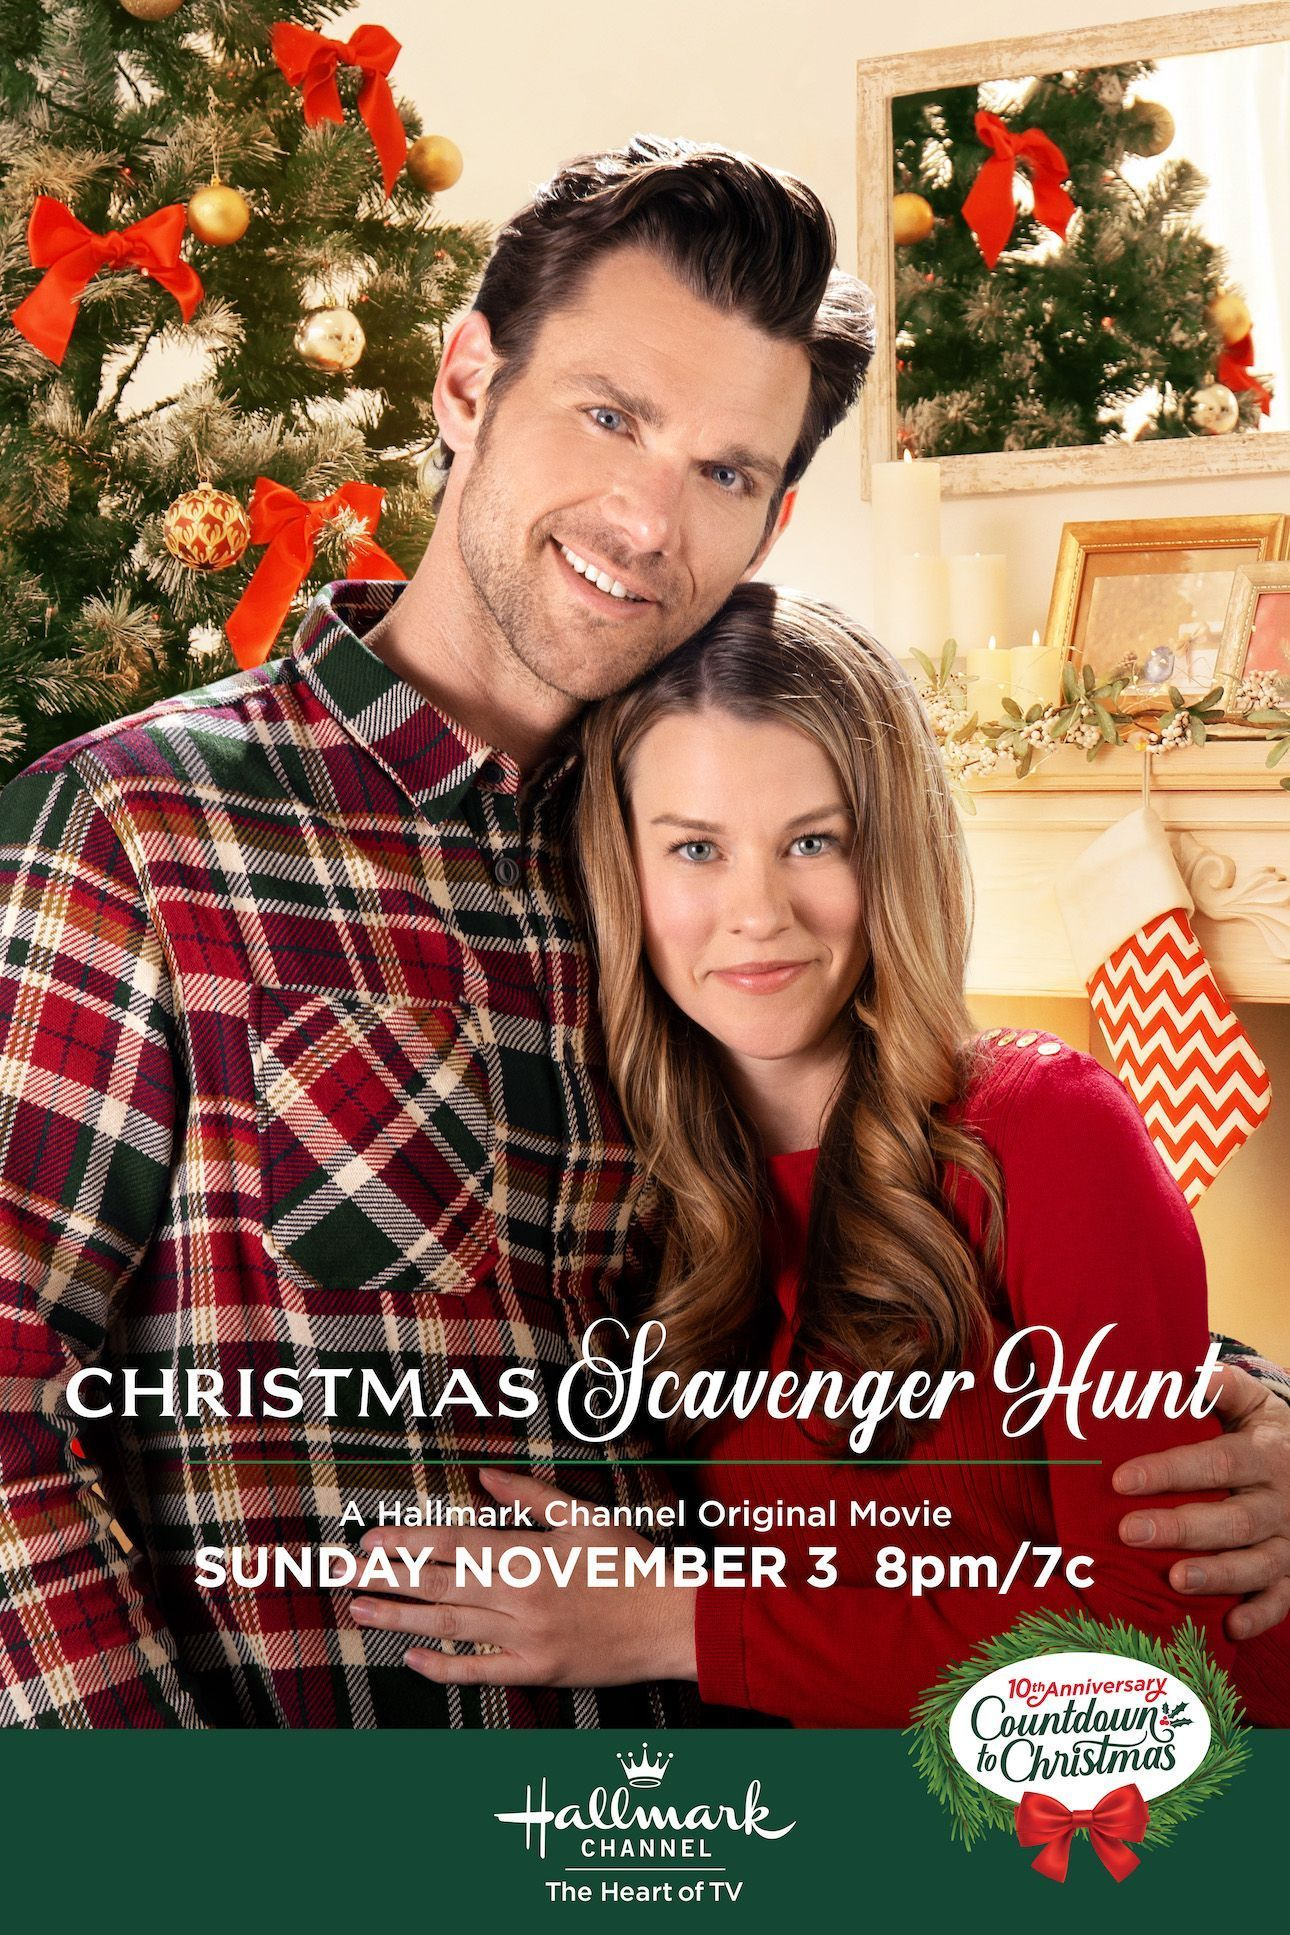 Make A Date For Christmas Scavenger Hunt Starring Kim Shaw And Kevin Mcg Hallmark Channel Christmas Movies Hallmark Christmas Movies Christmas Scavenger Hunt